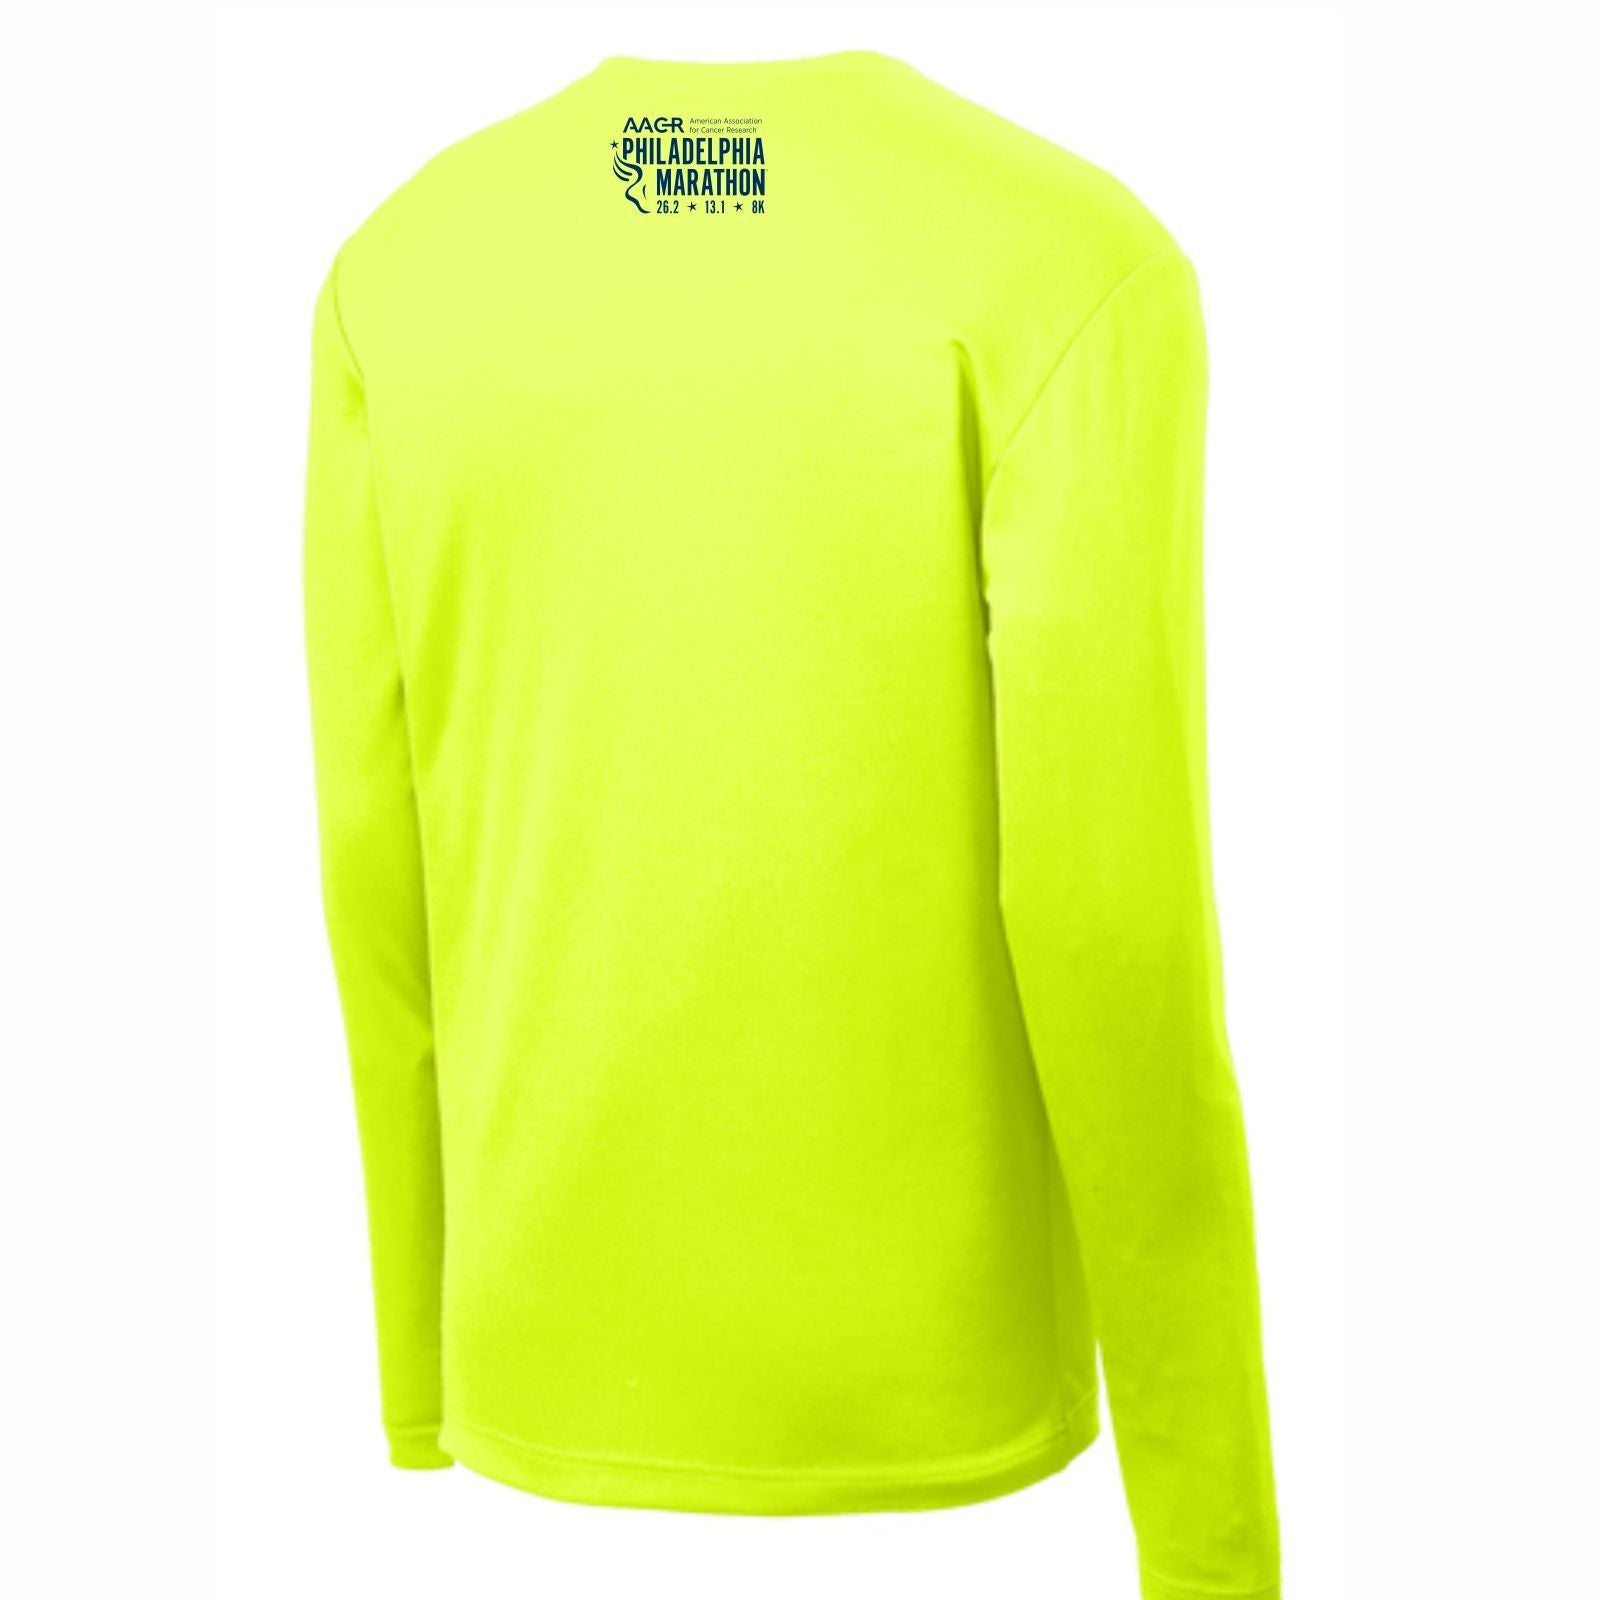 AACR Philadelphia Marathon 'Run Philly' Men's LS Tech Tee - Nightlife